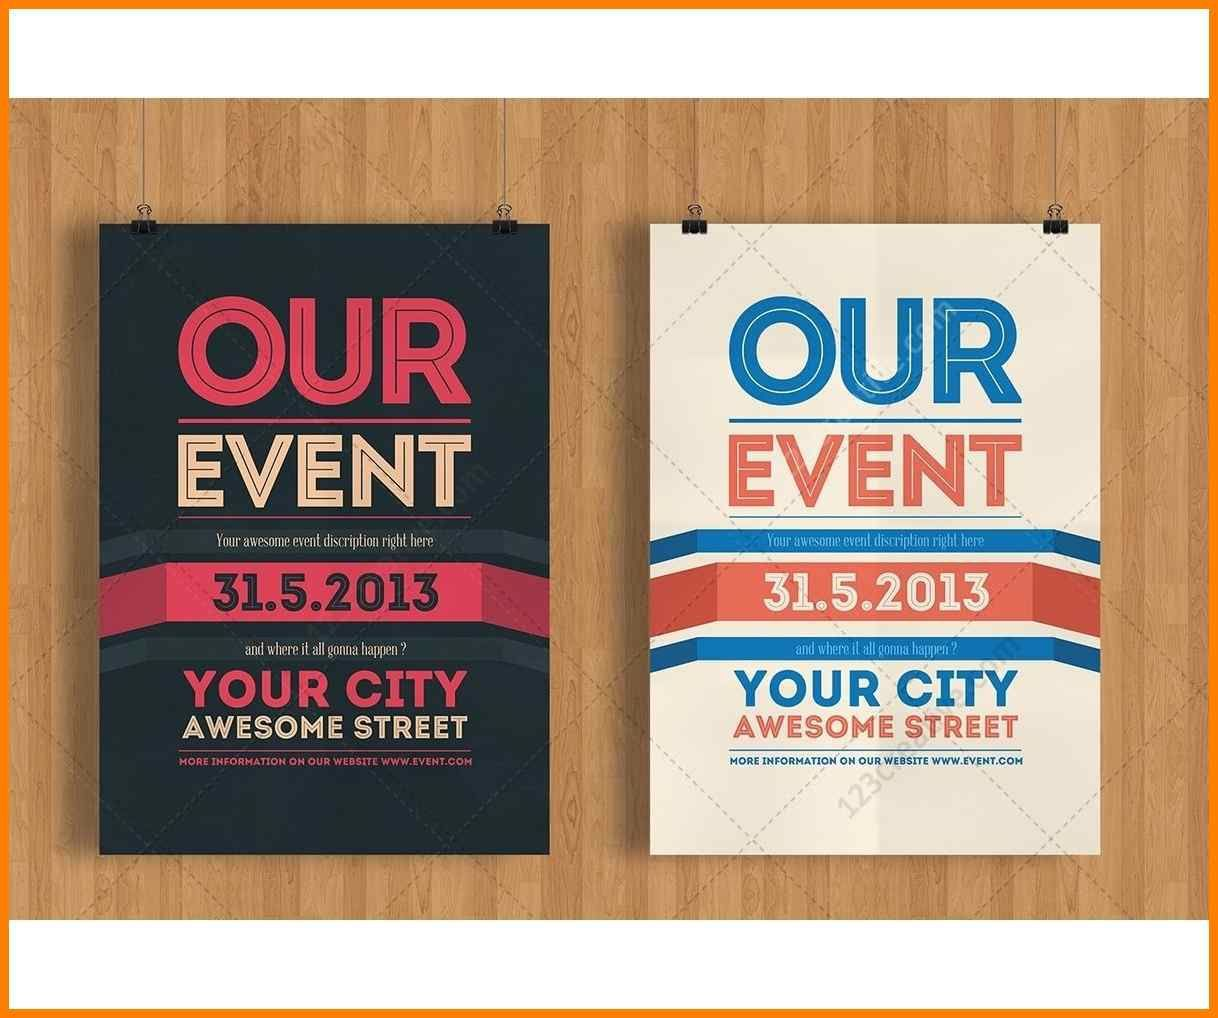 003 Top Event Flyer Template Word High Resolution  Free SpringFull